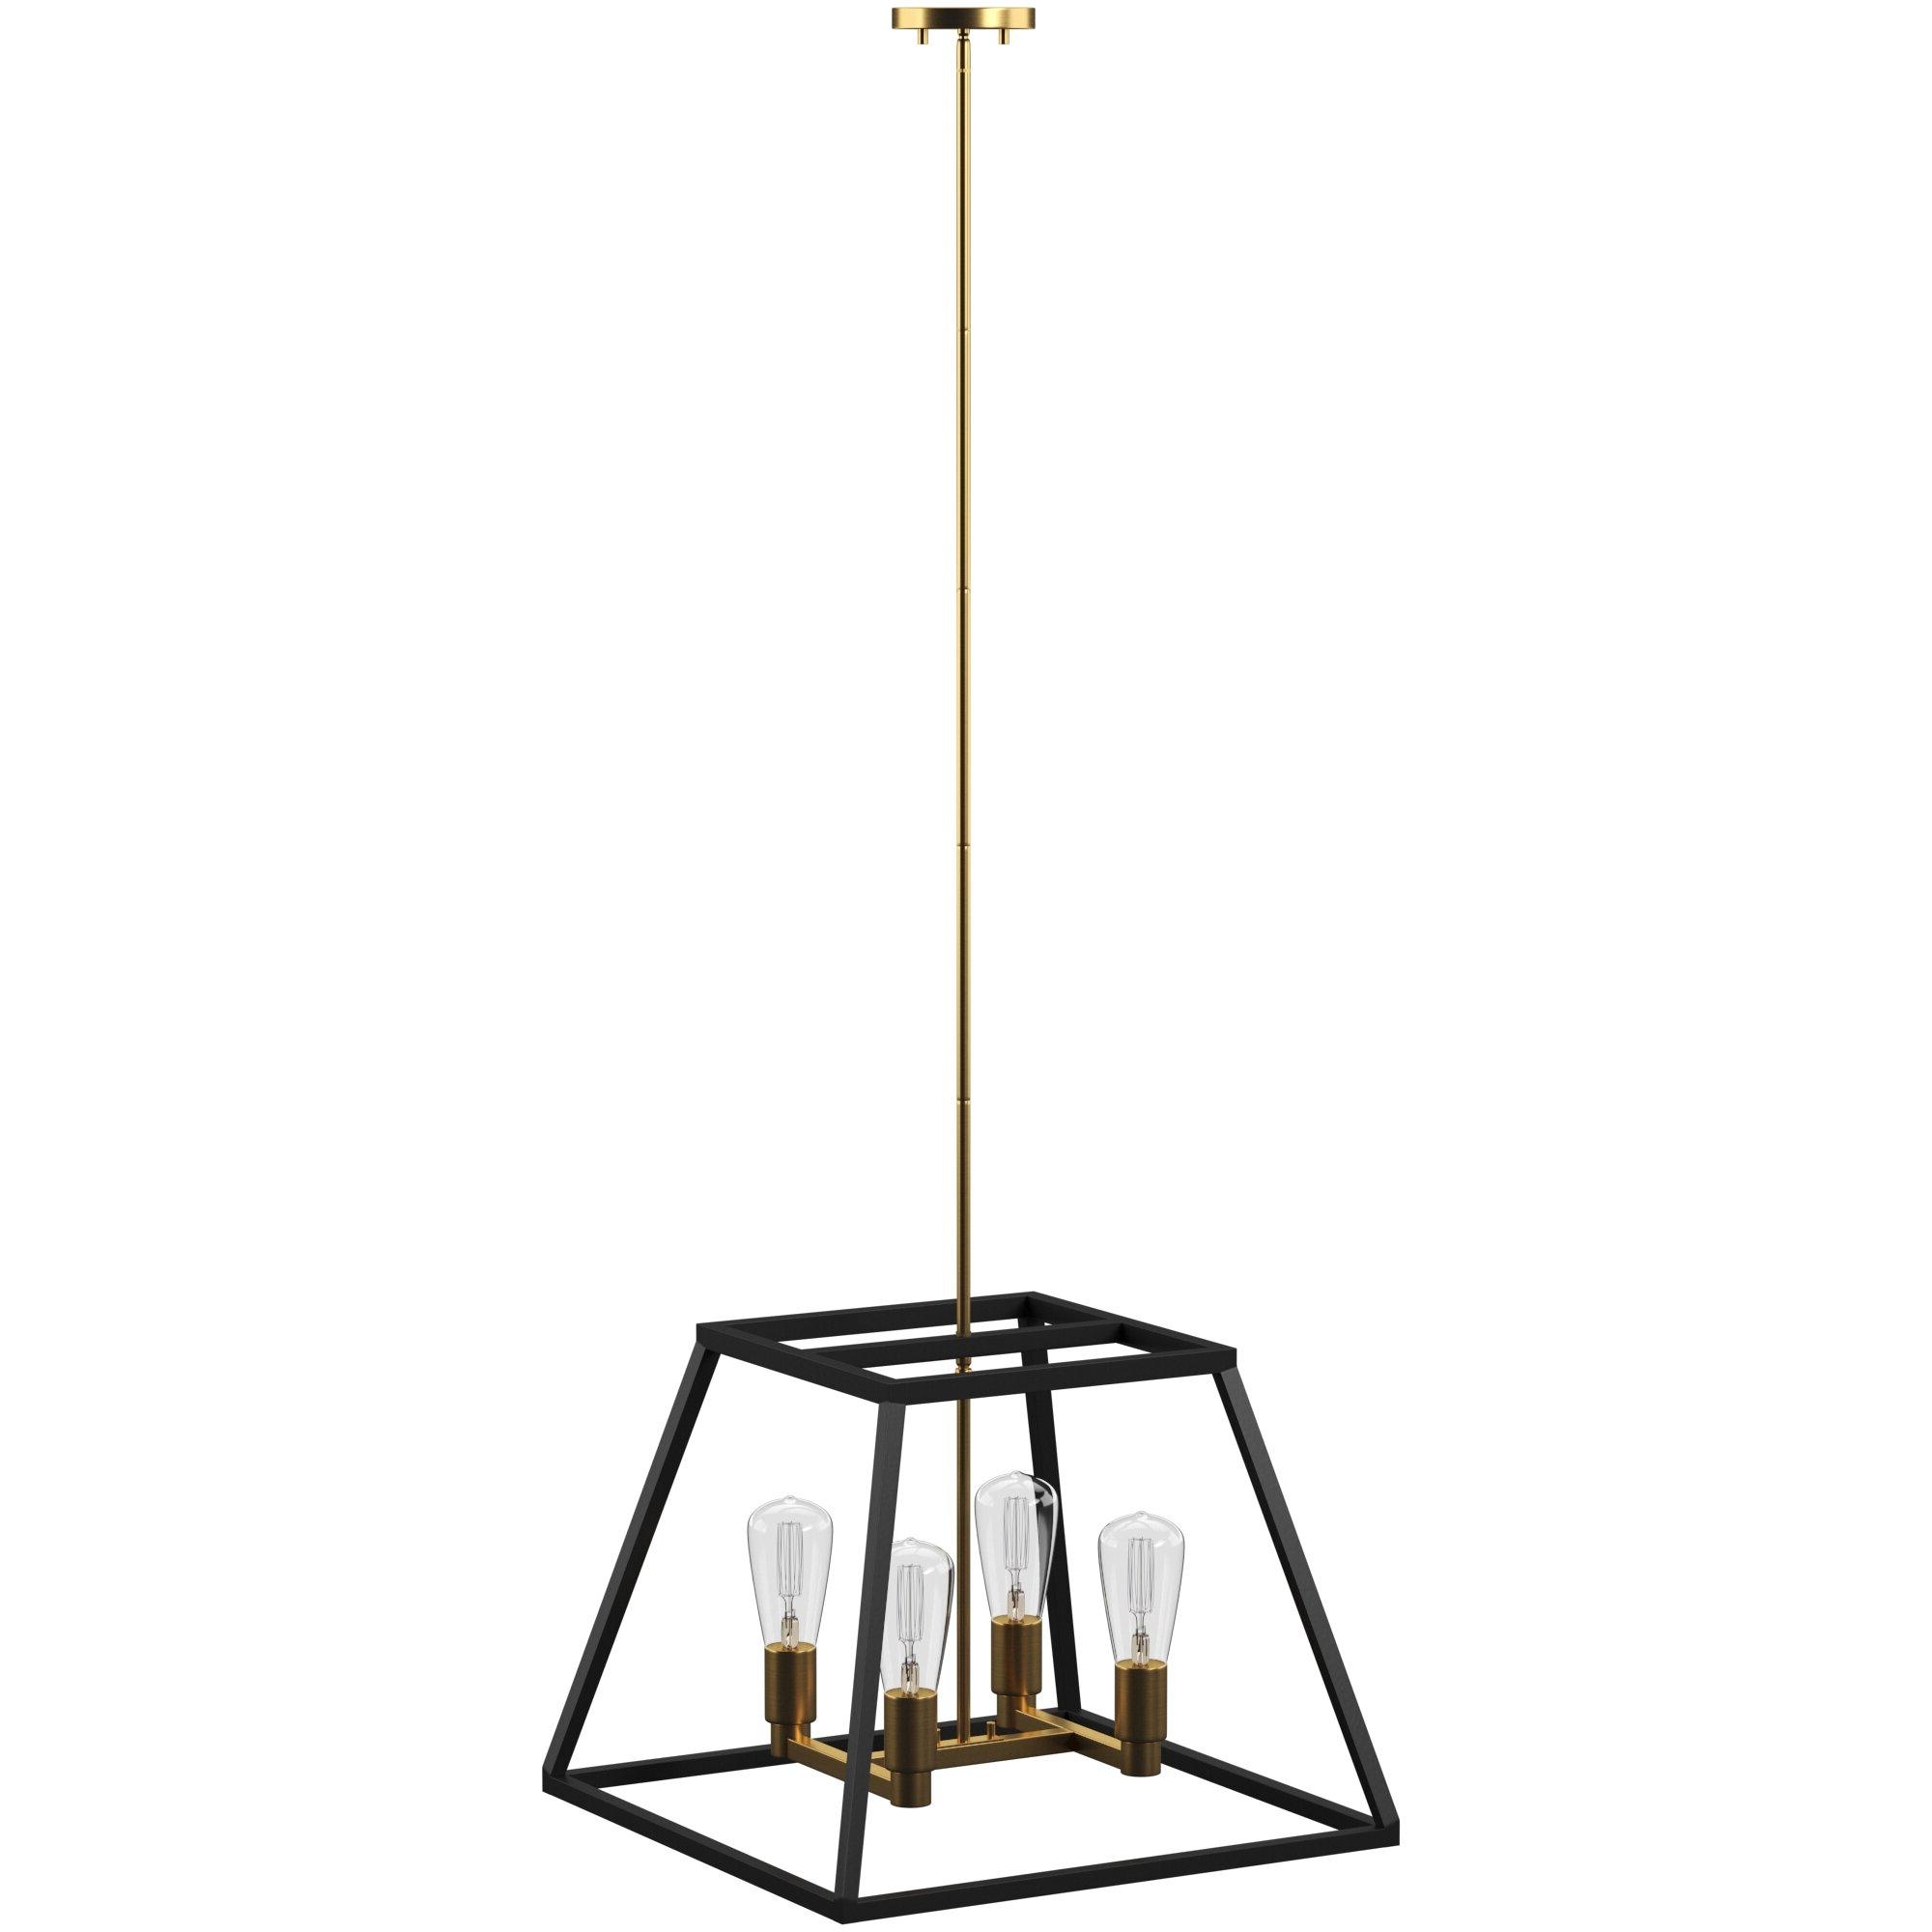 Allmodern Pertaining To Recent Hendry 4 Light Globe Chandeliers (View 2 of 20)